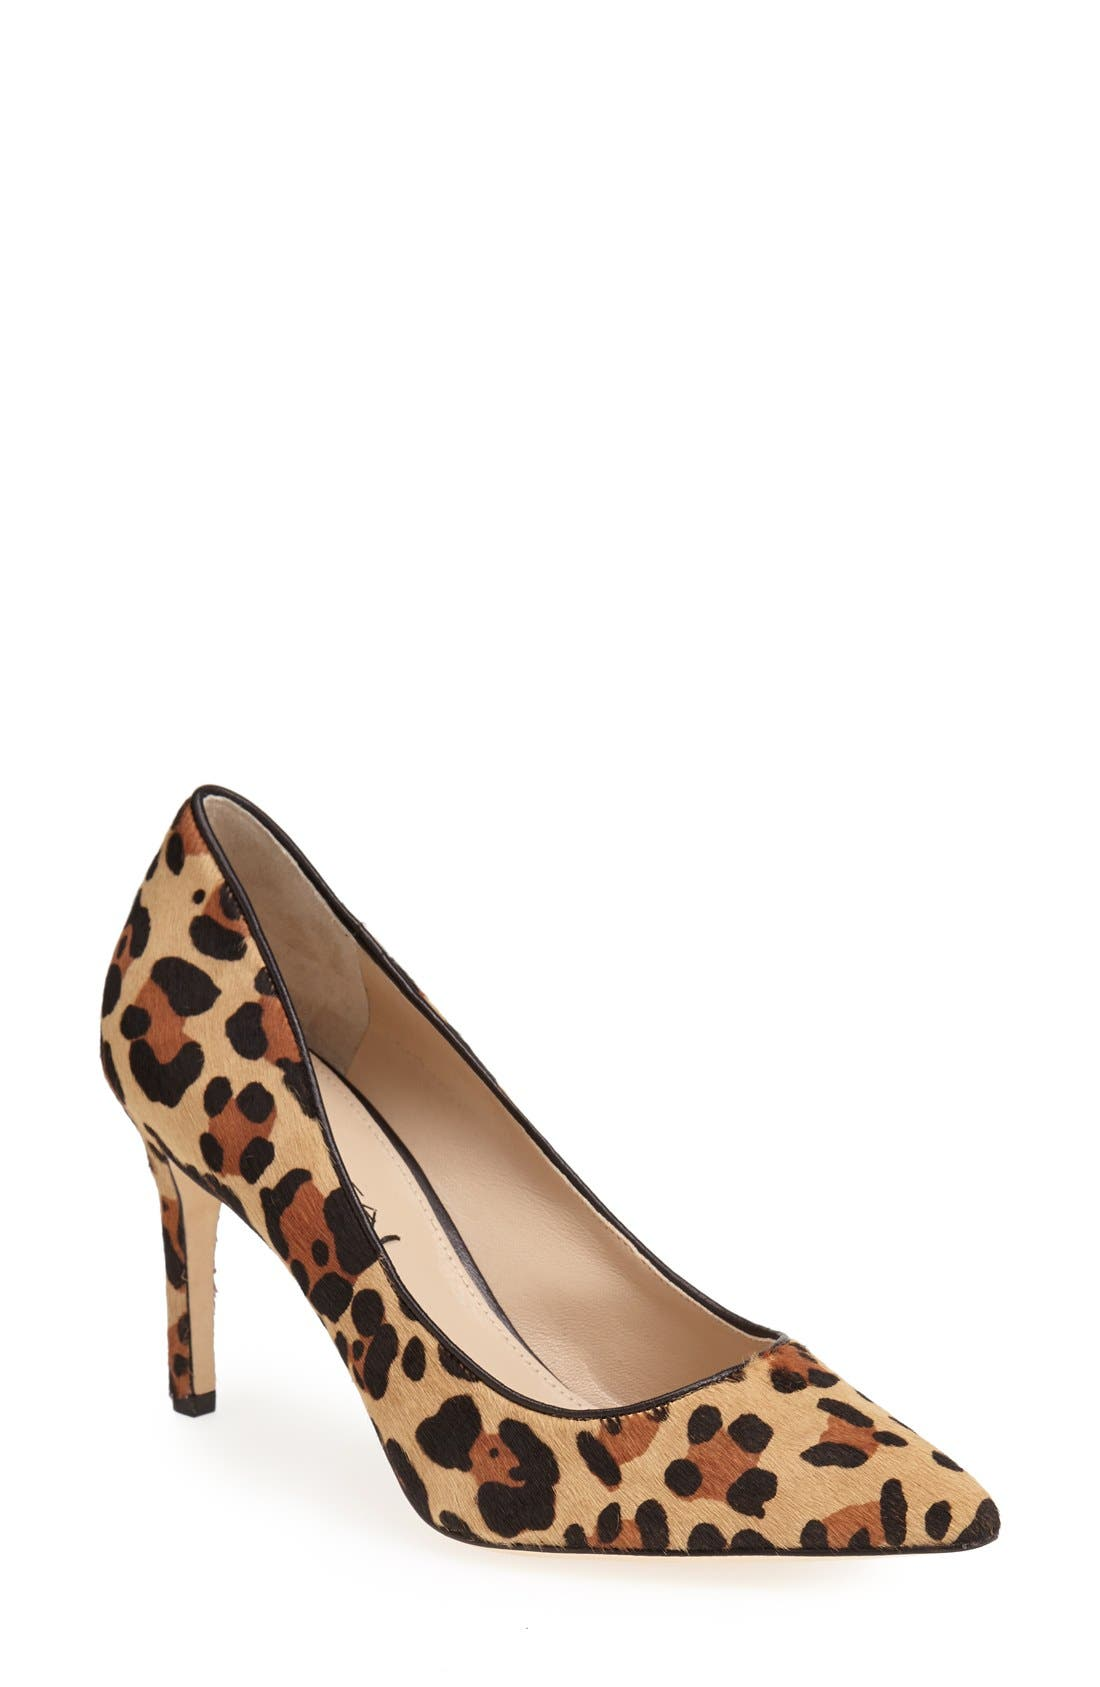 Main Image - Via Spiga 'Carola' Pointy Toe Pump (Women)